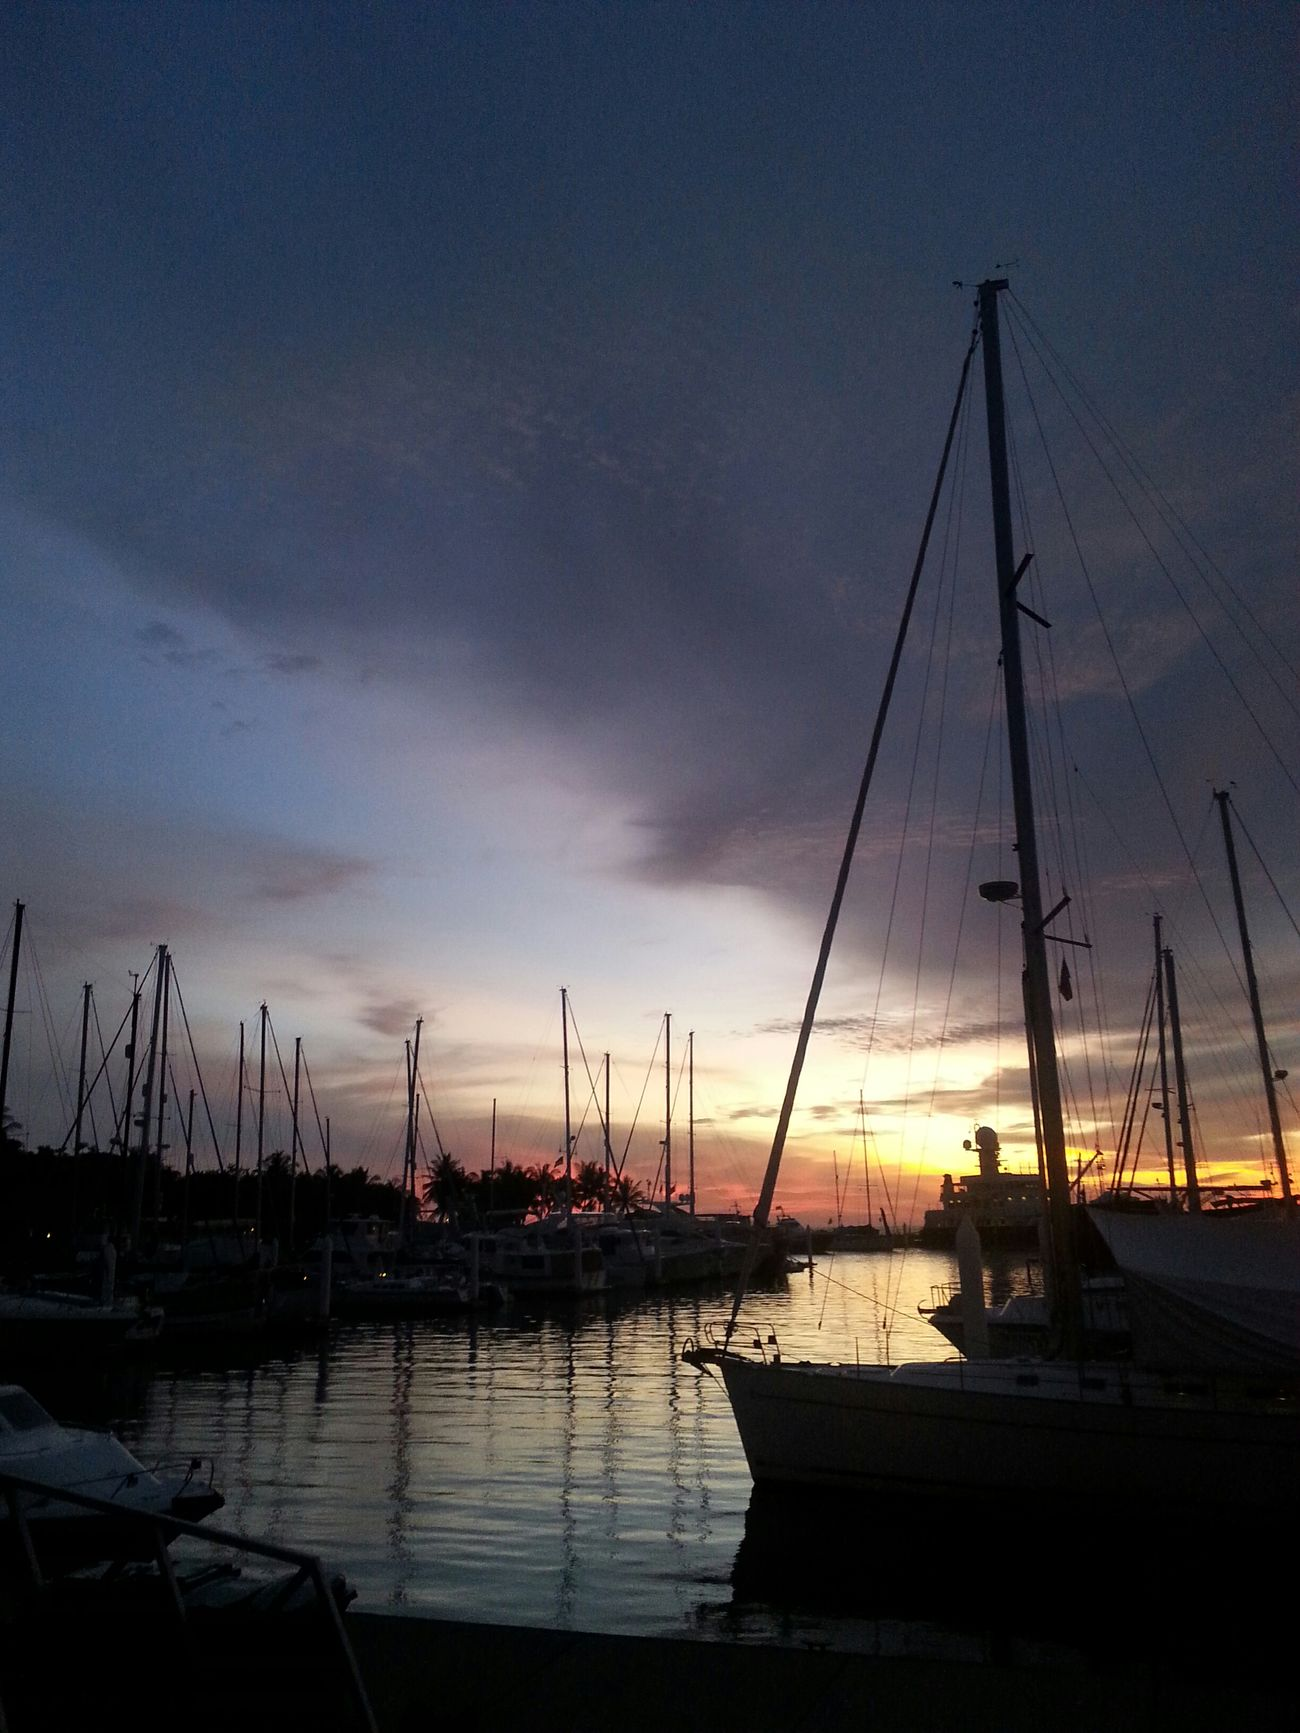 Sutera Harbour.Sabah. sorry for the pic quality.Sunset Lover Took By Phone